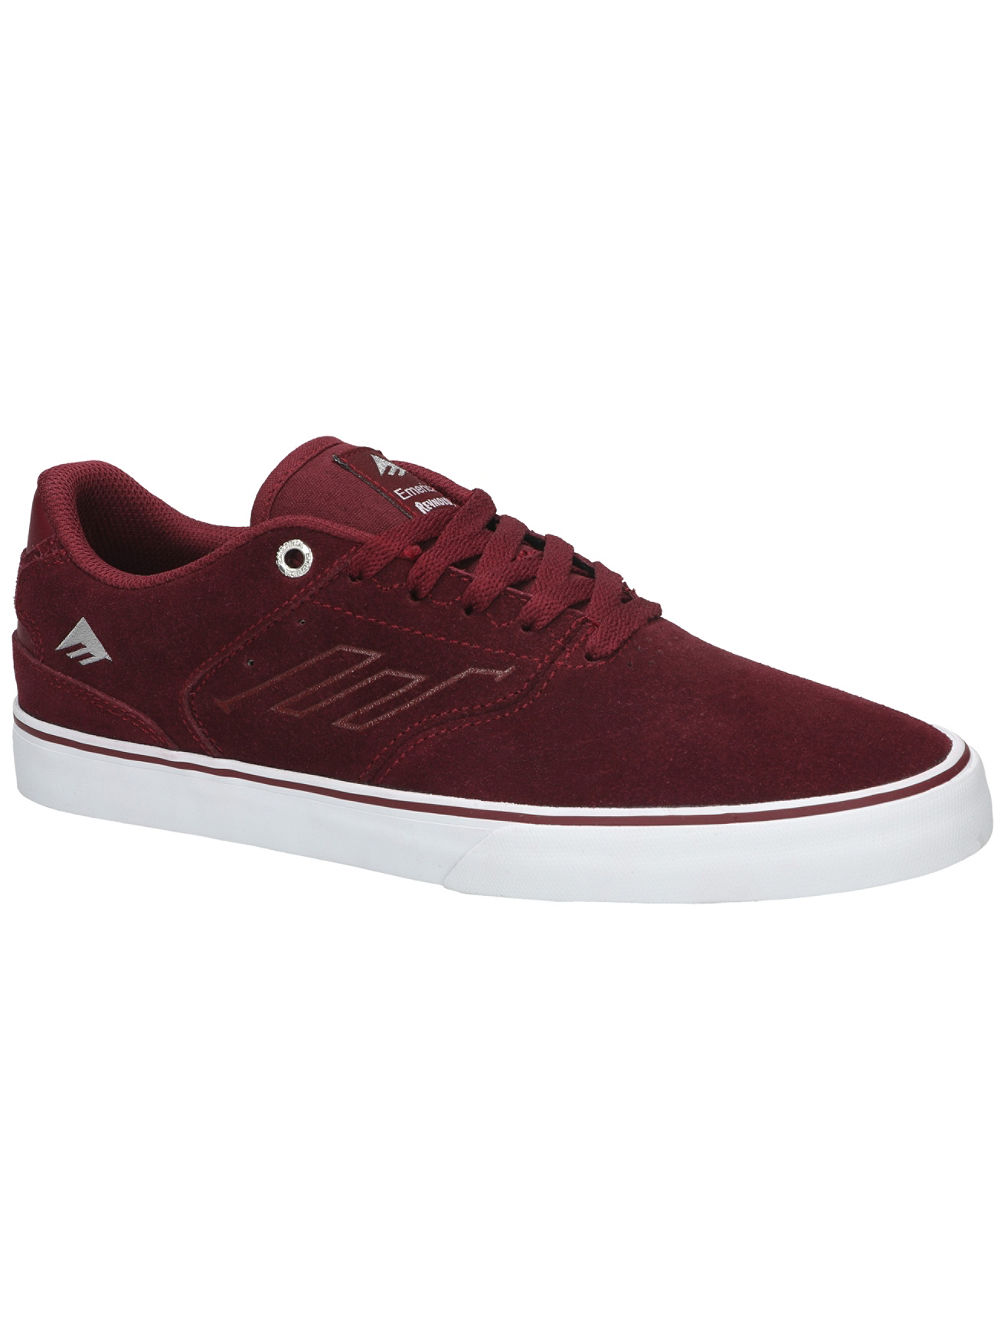 The Reynolds Low Vulc Skate Shoes